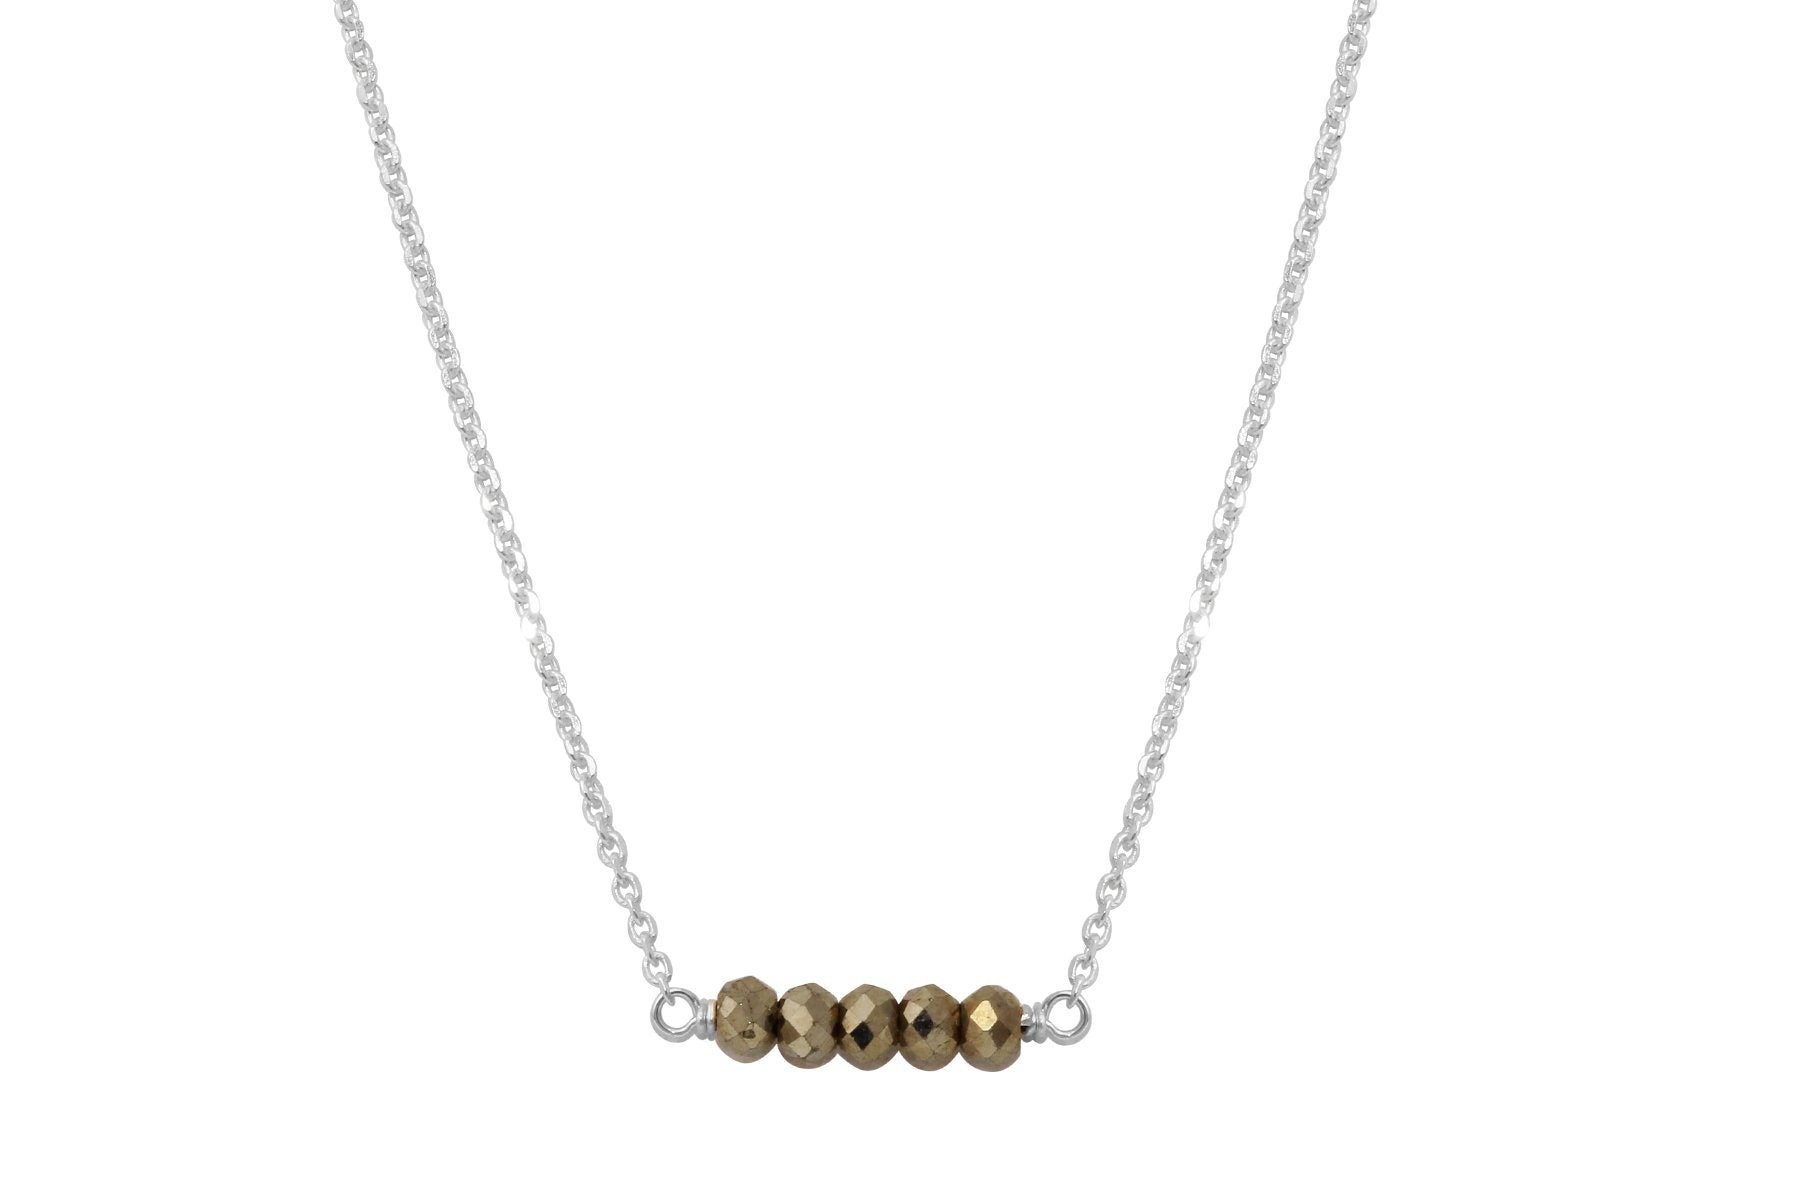 Elements Pyrite sterling silver necklace - quick ship - Amanda K Lockrow